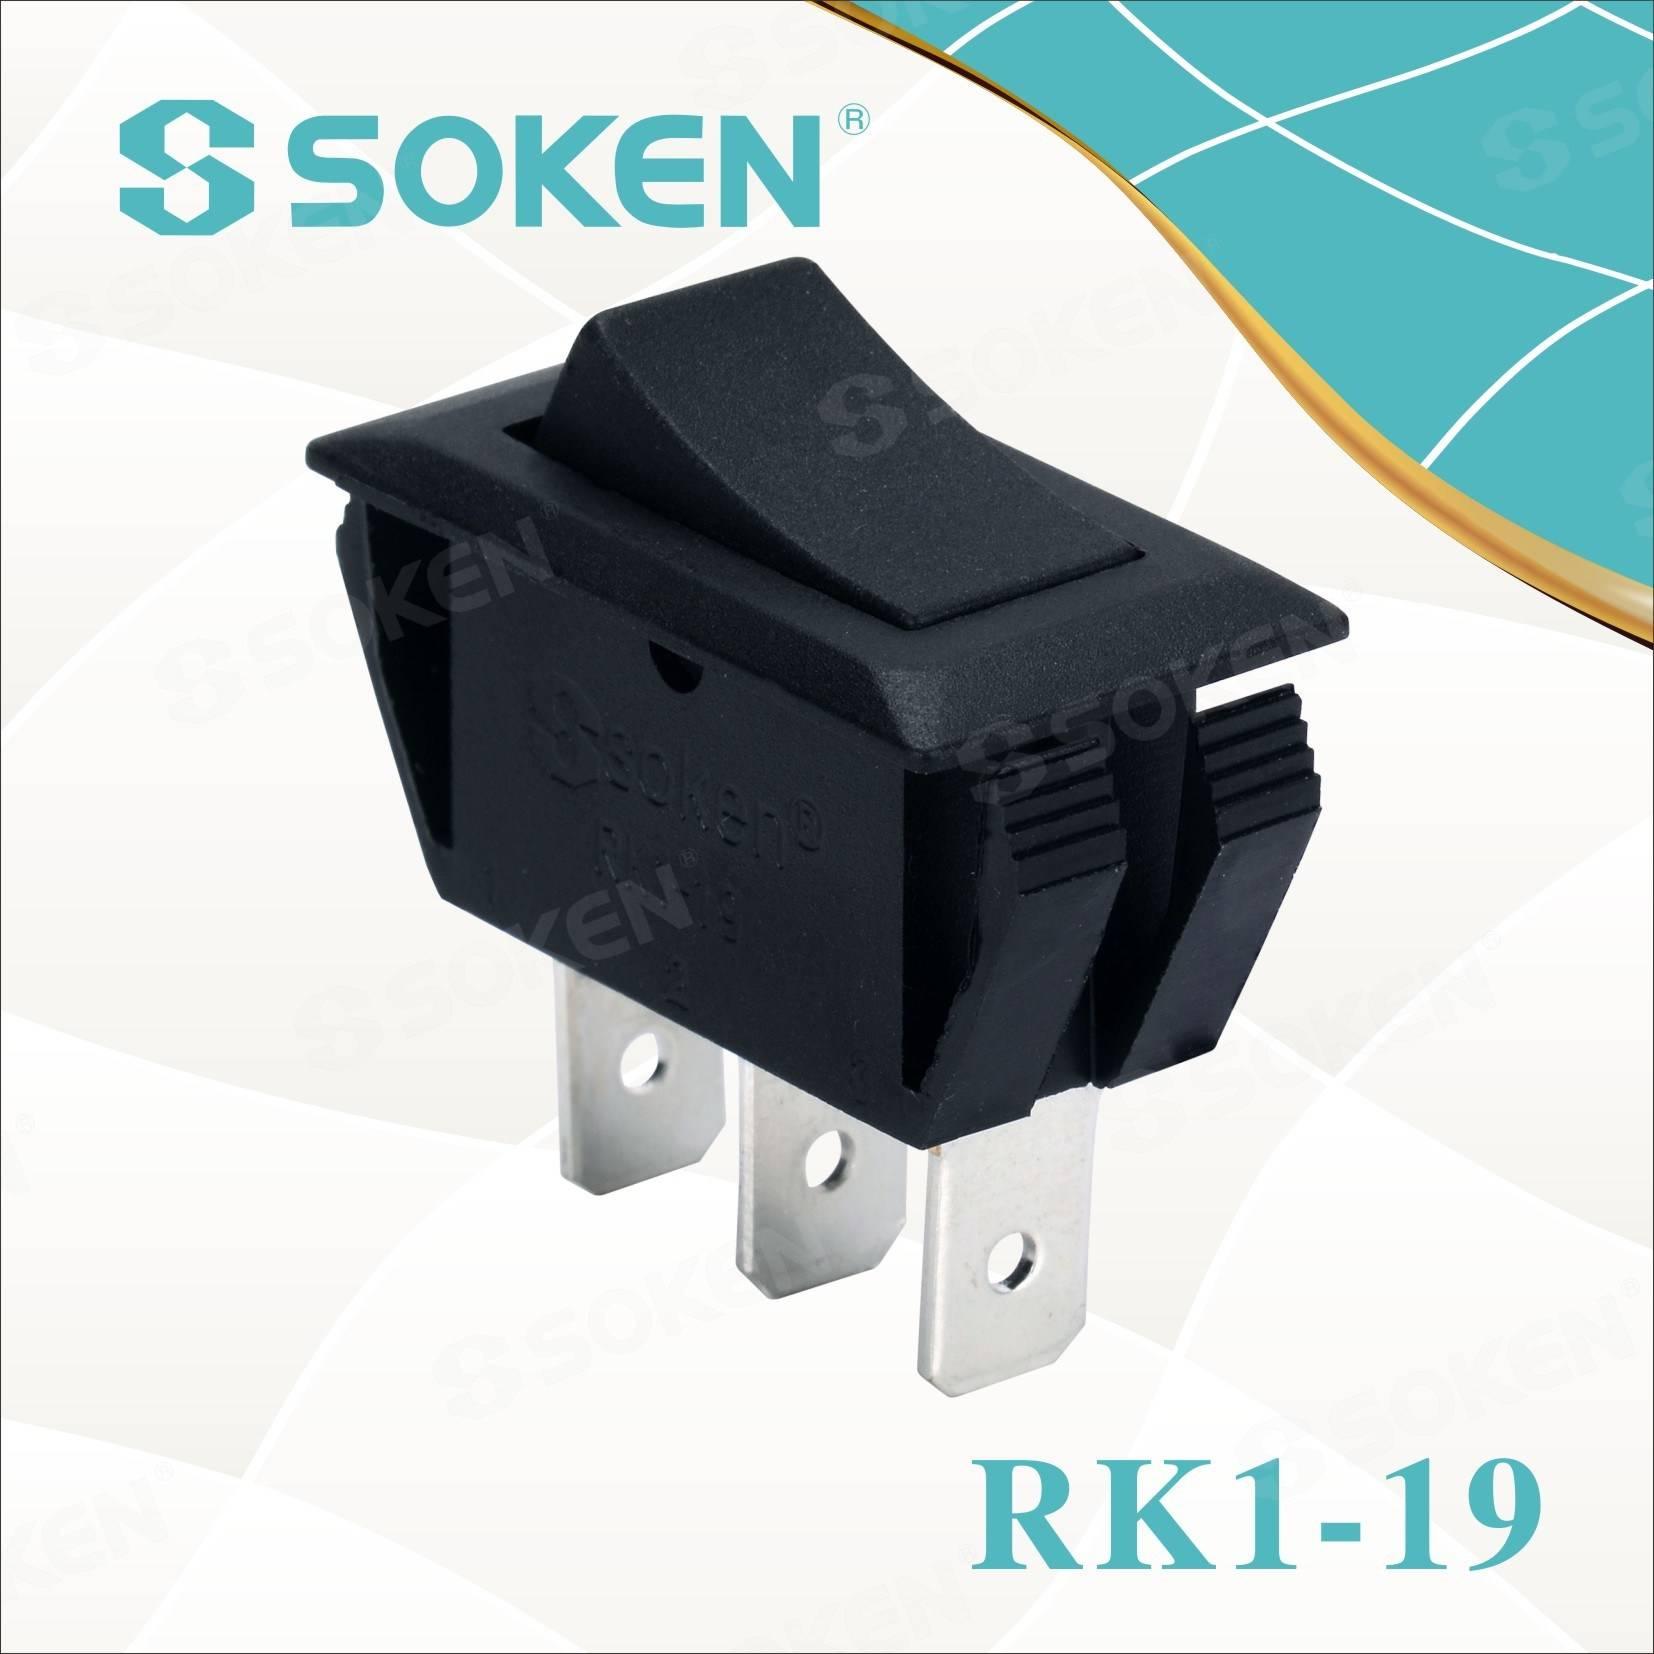 Trending Products Unique Off Low High Rocker Switch -